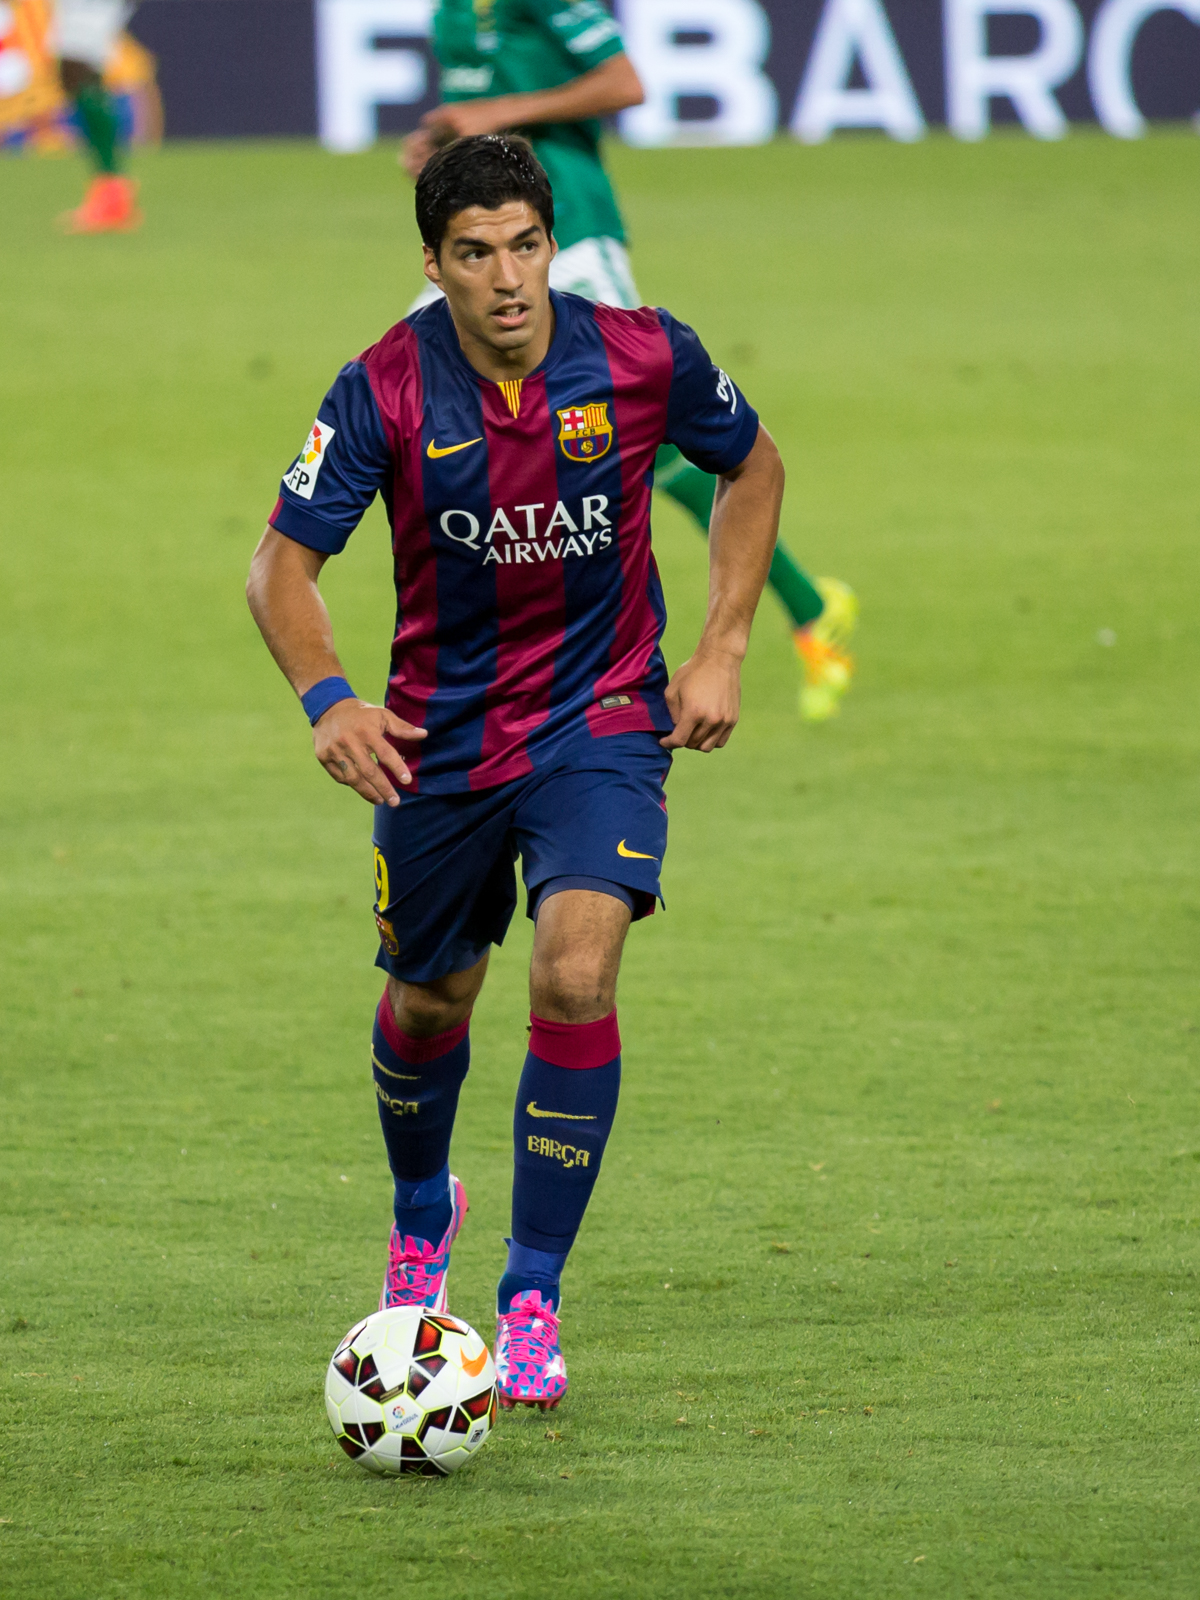 Bet on Barca to win the Champions League